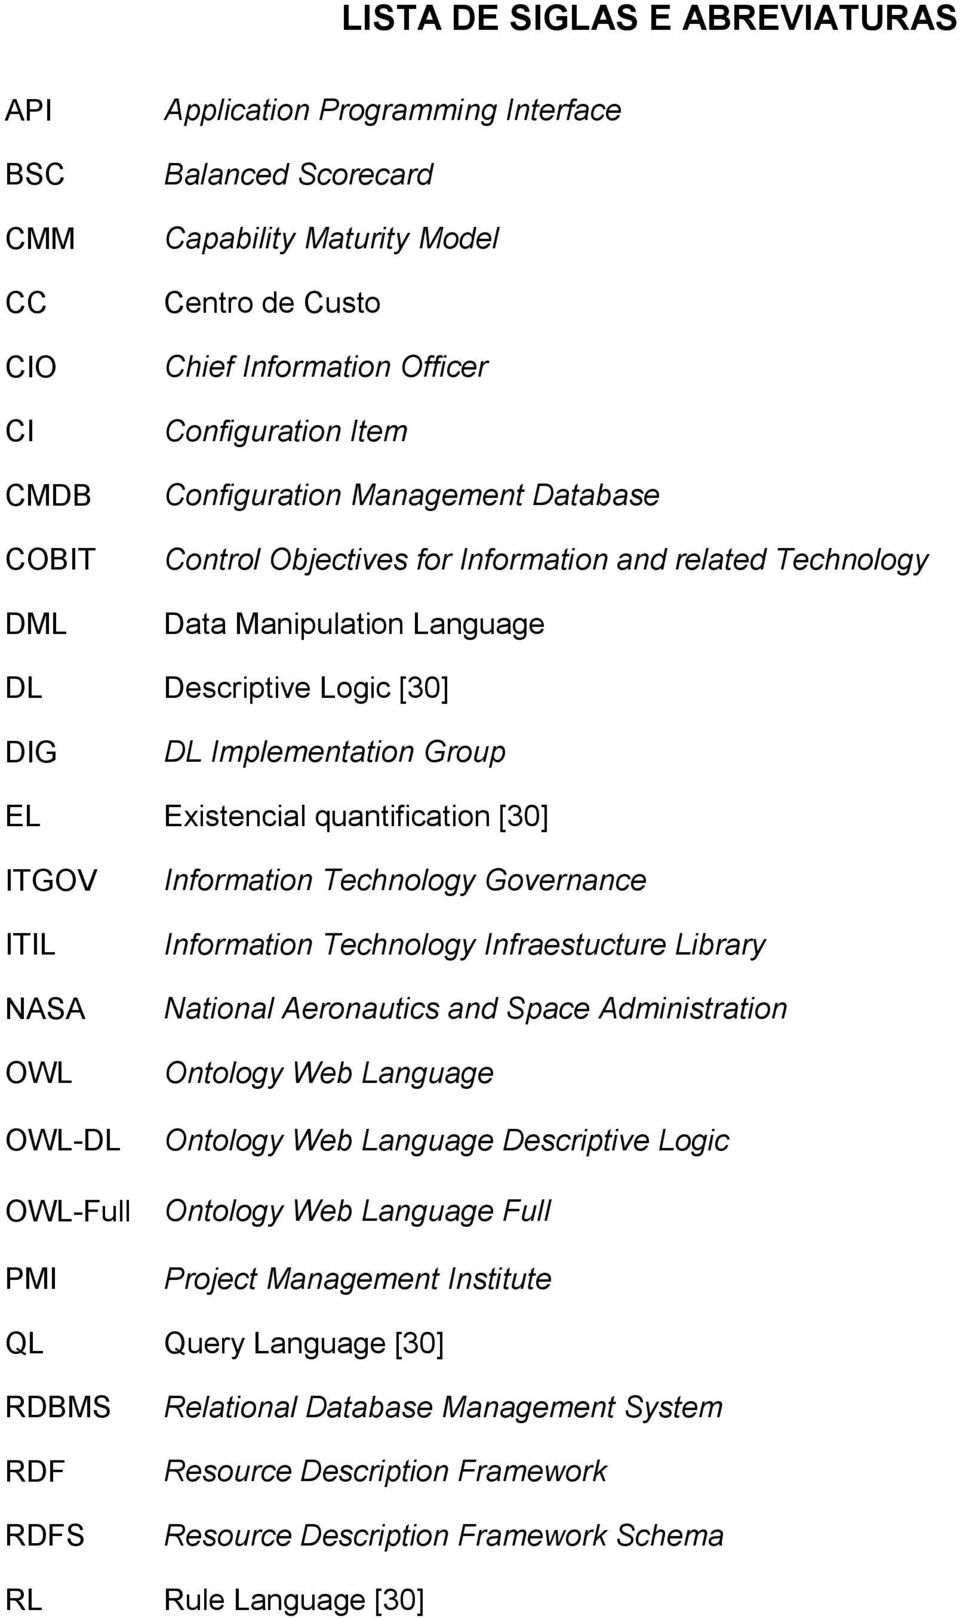 Existencial quantification [30] ITGOV ITIL NASA OWL OWL-DL OWL-Full PMI Information Technology Governance Information Technology Infraestucture Library National Aeronautics and Space Administration